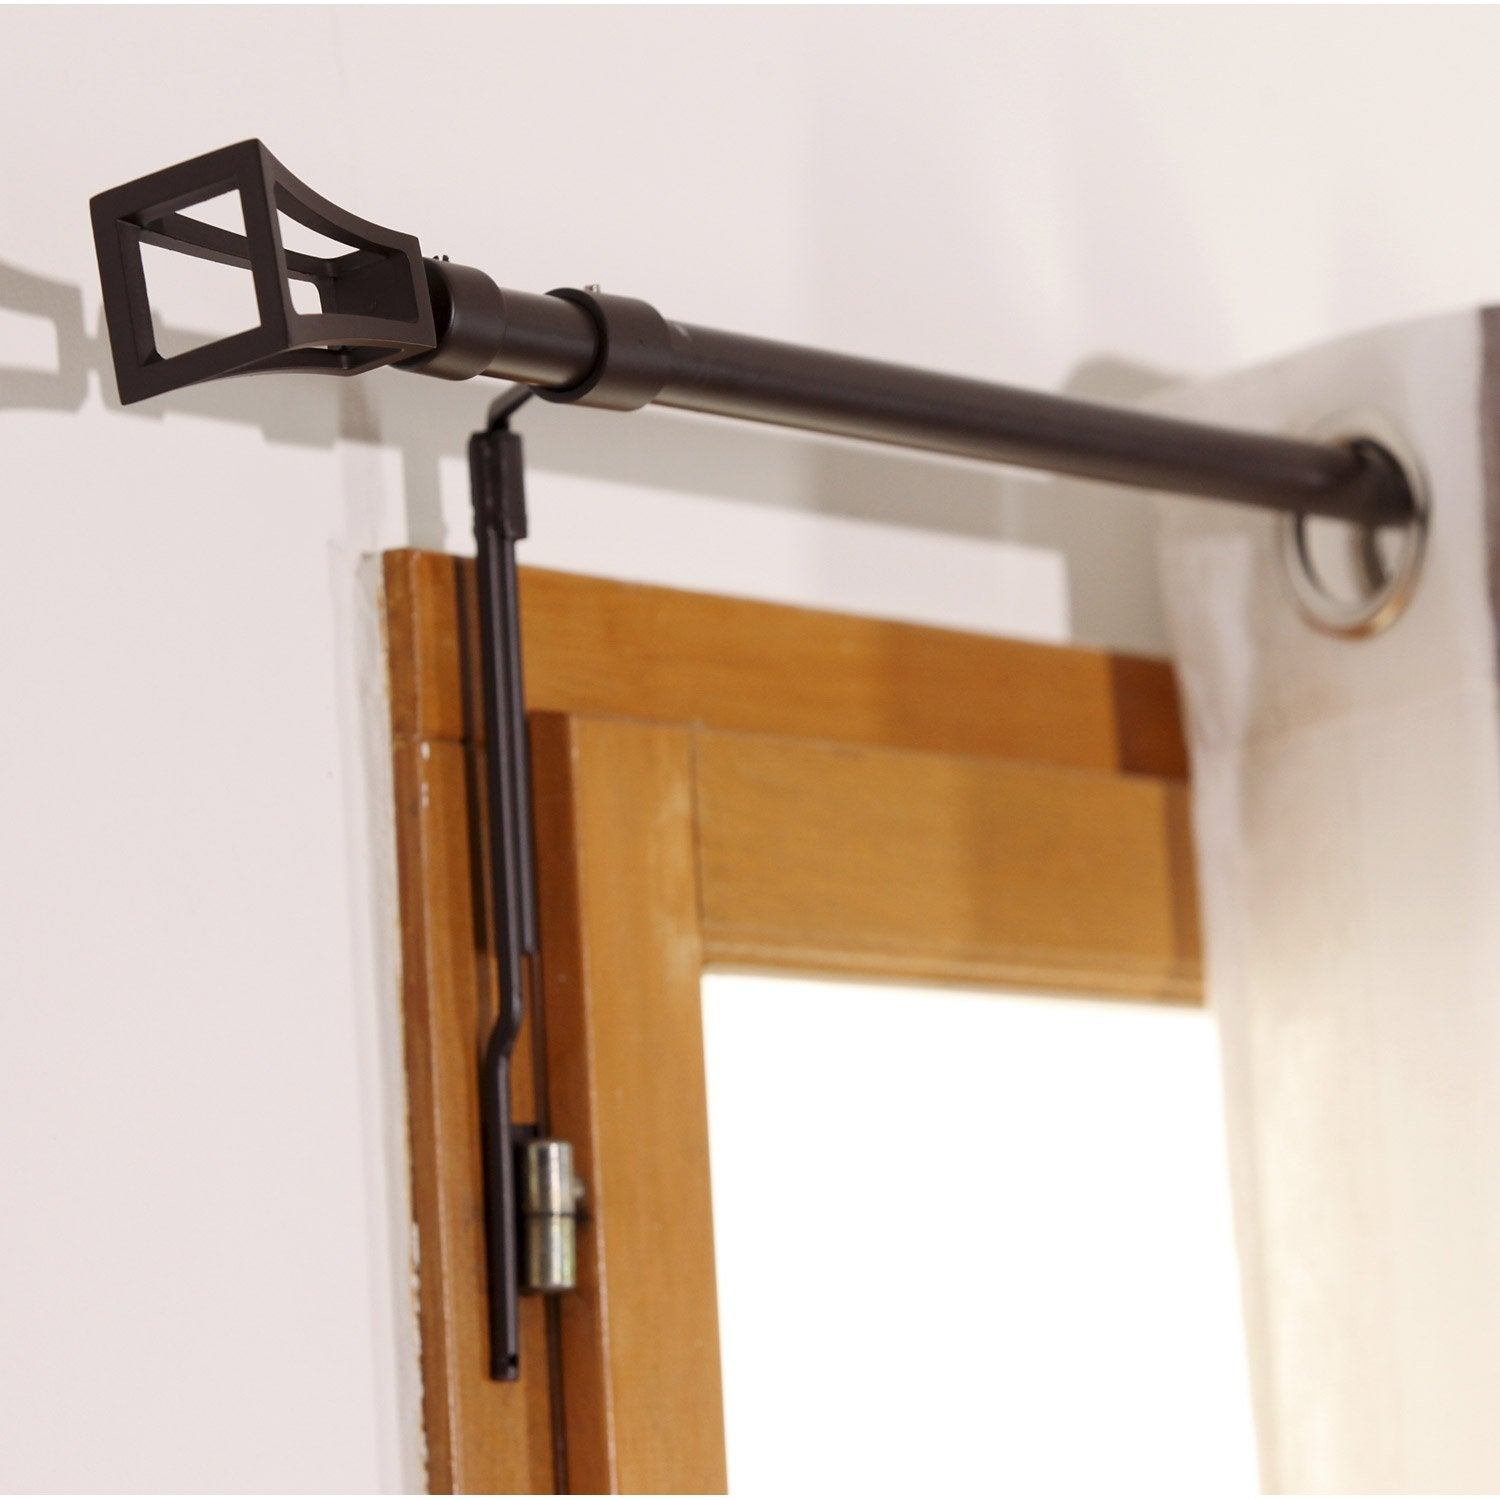 Tringle a rideau sans percer pour porte d entree - Tringle a rideau extensible sans percer ...